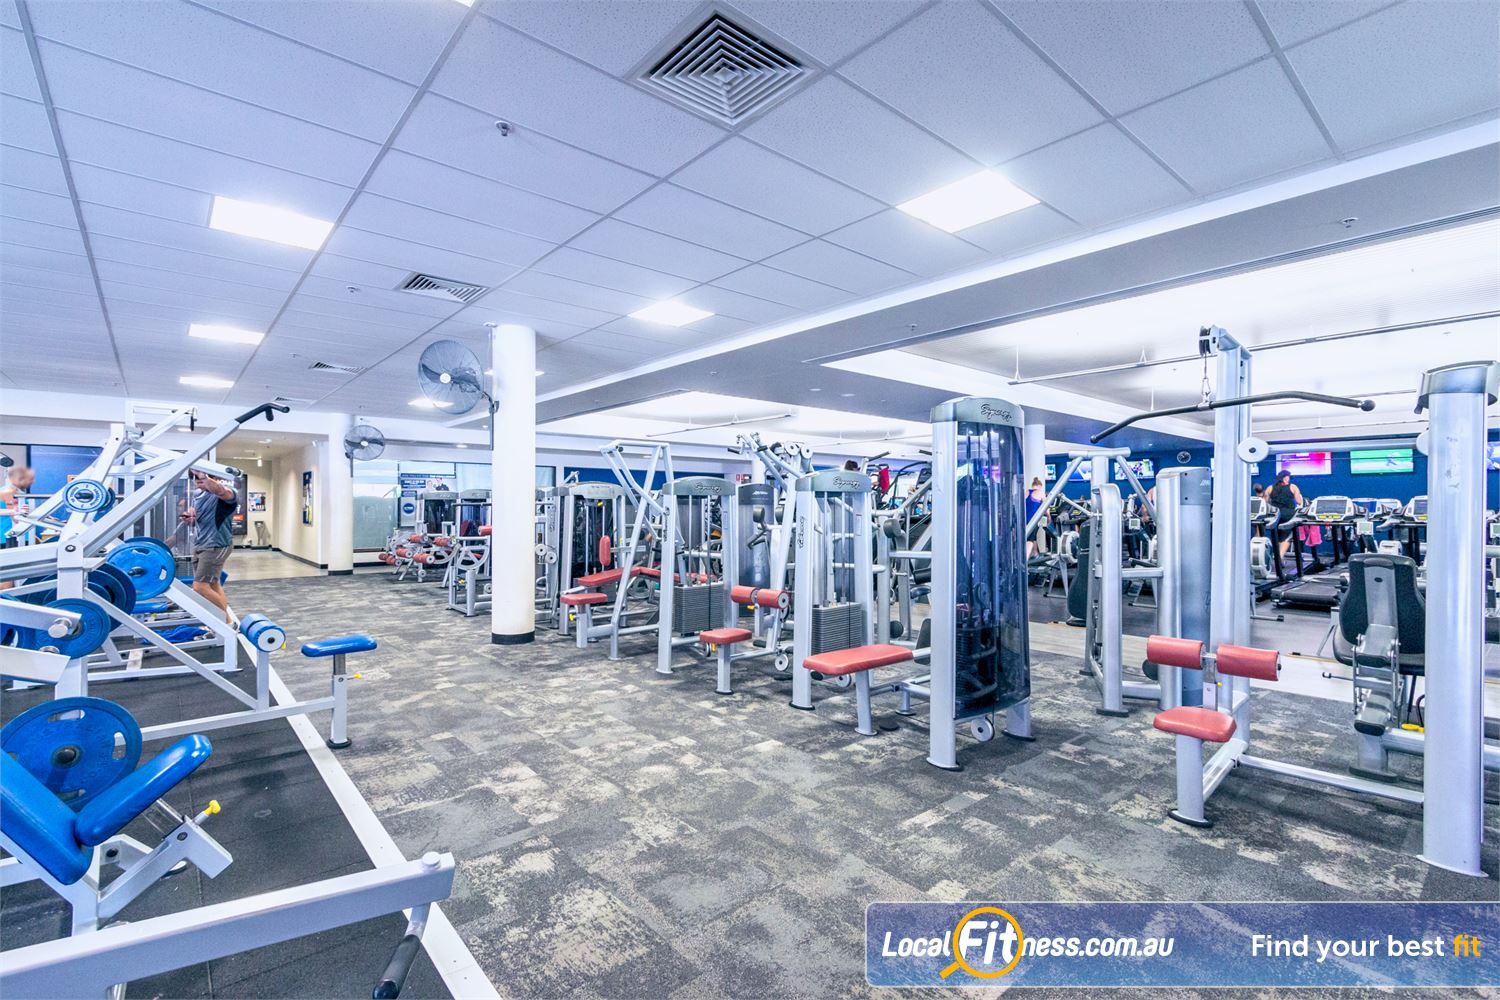 Goodlife Health Clubs Fortitude Valley Our Fortitude Valley gym provides state of the art Calgym and Life Fitness equipment.